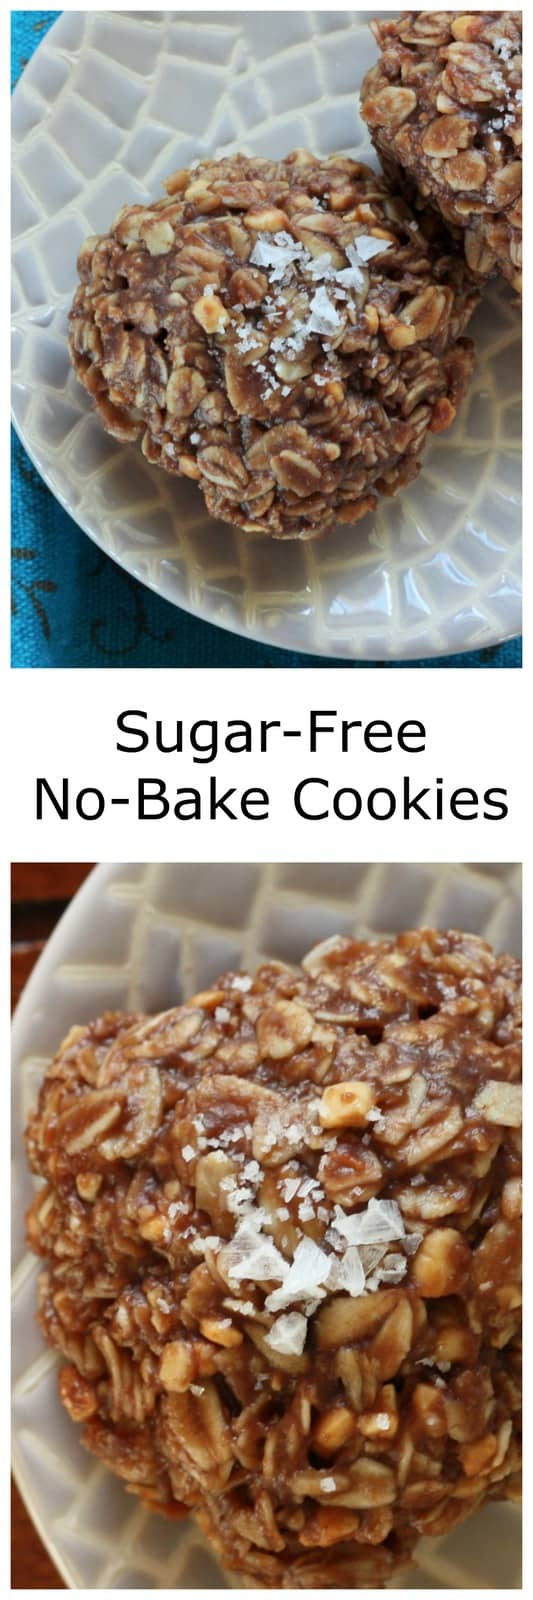 Luscious and chocolate Sugar-Free No-Bake Cookies topped with flaky sea salt is the perfect snack free of refined sugars. Gluten-free, sugar-free, and dairy-free no-bake cookies are so delicious!